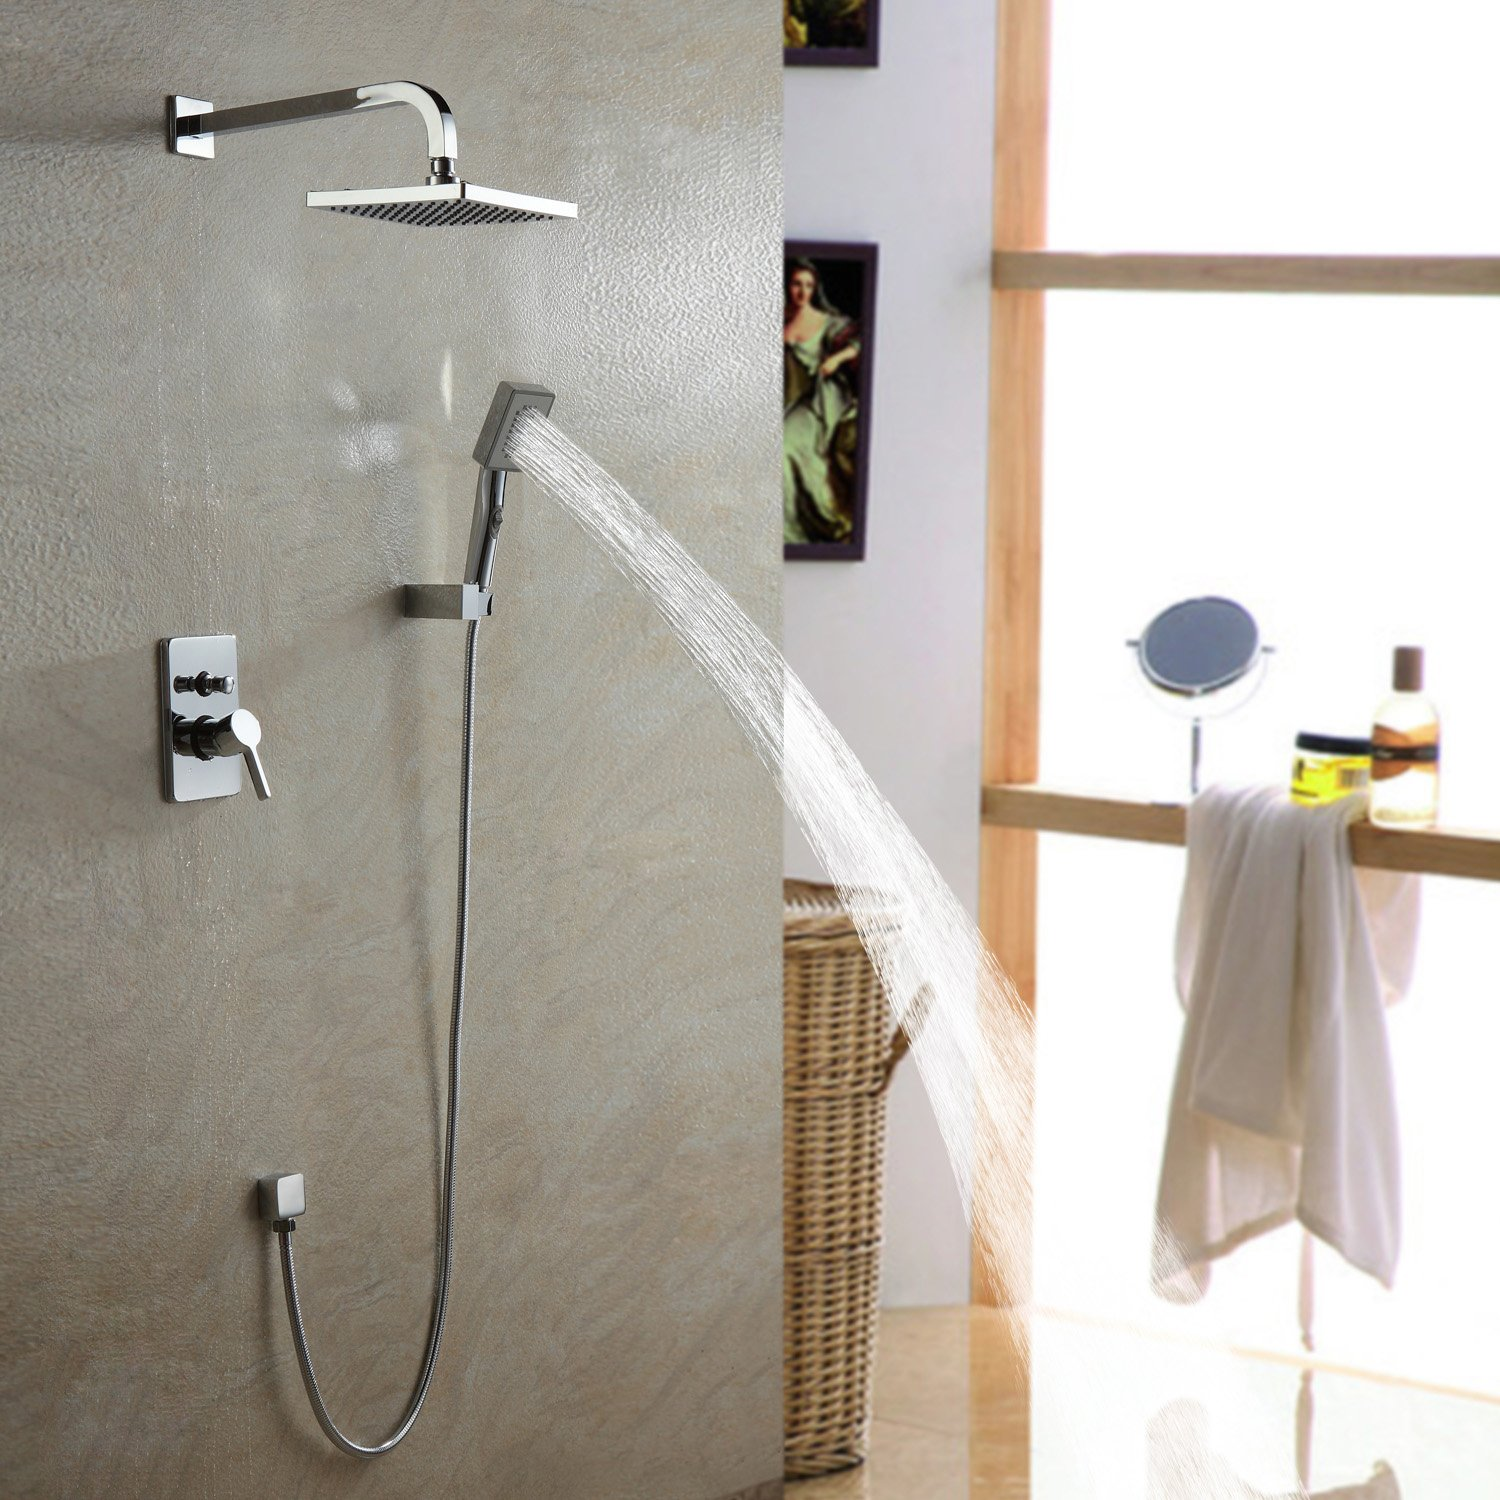 LightInTheBox Single Handle Wall Mount Shower Faucet with 10 Inch ...